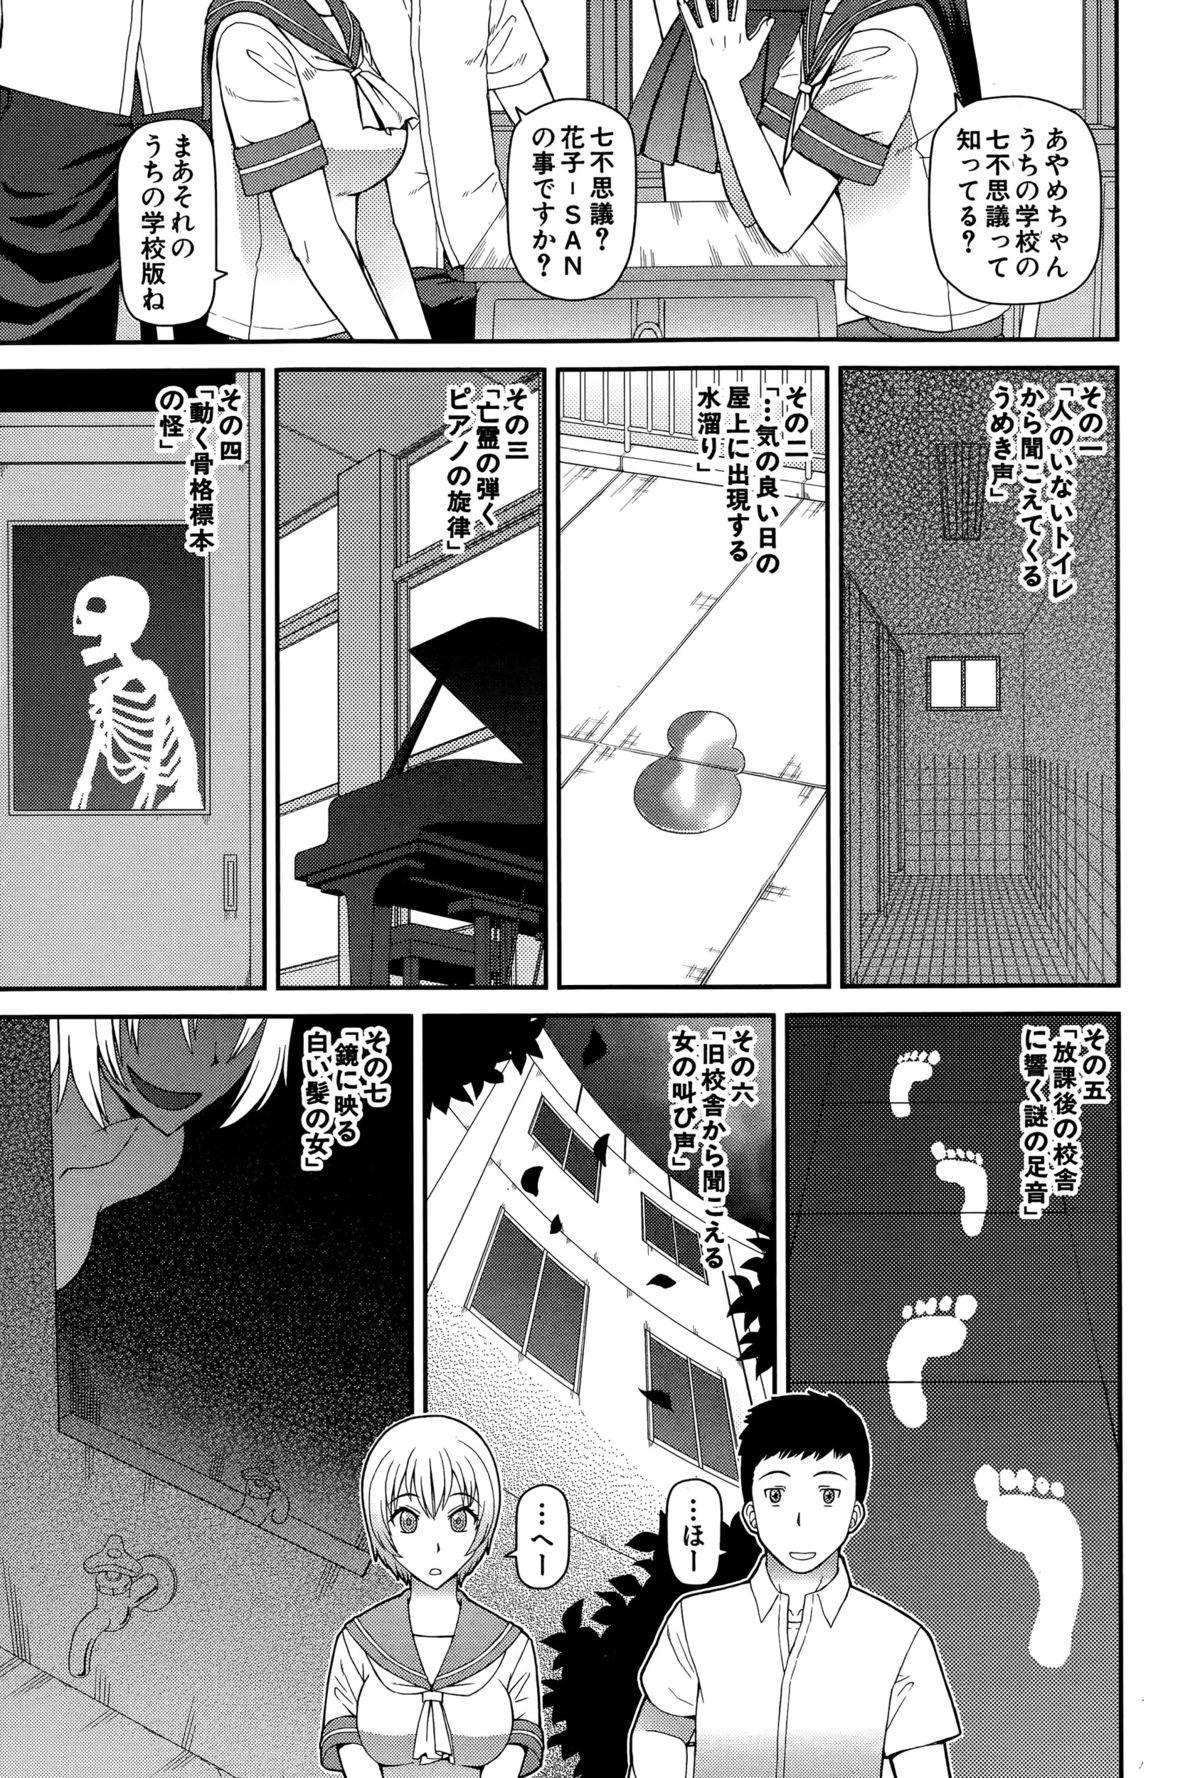 BUSTER COMIC 2015-07 198